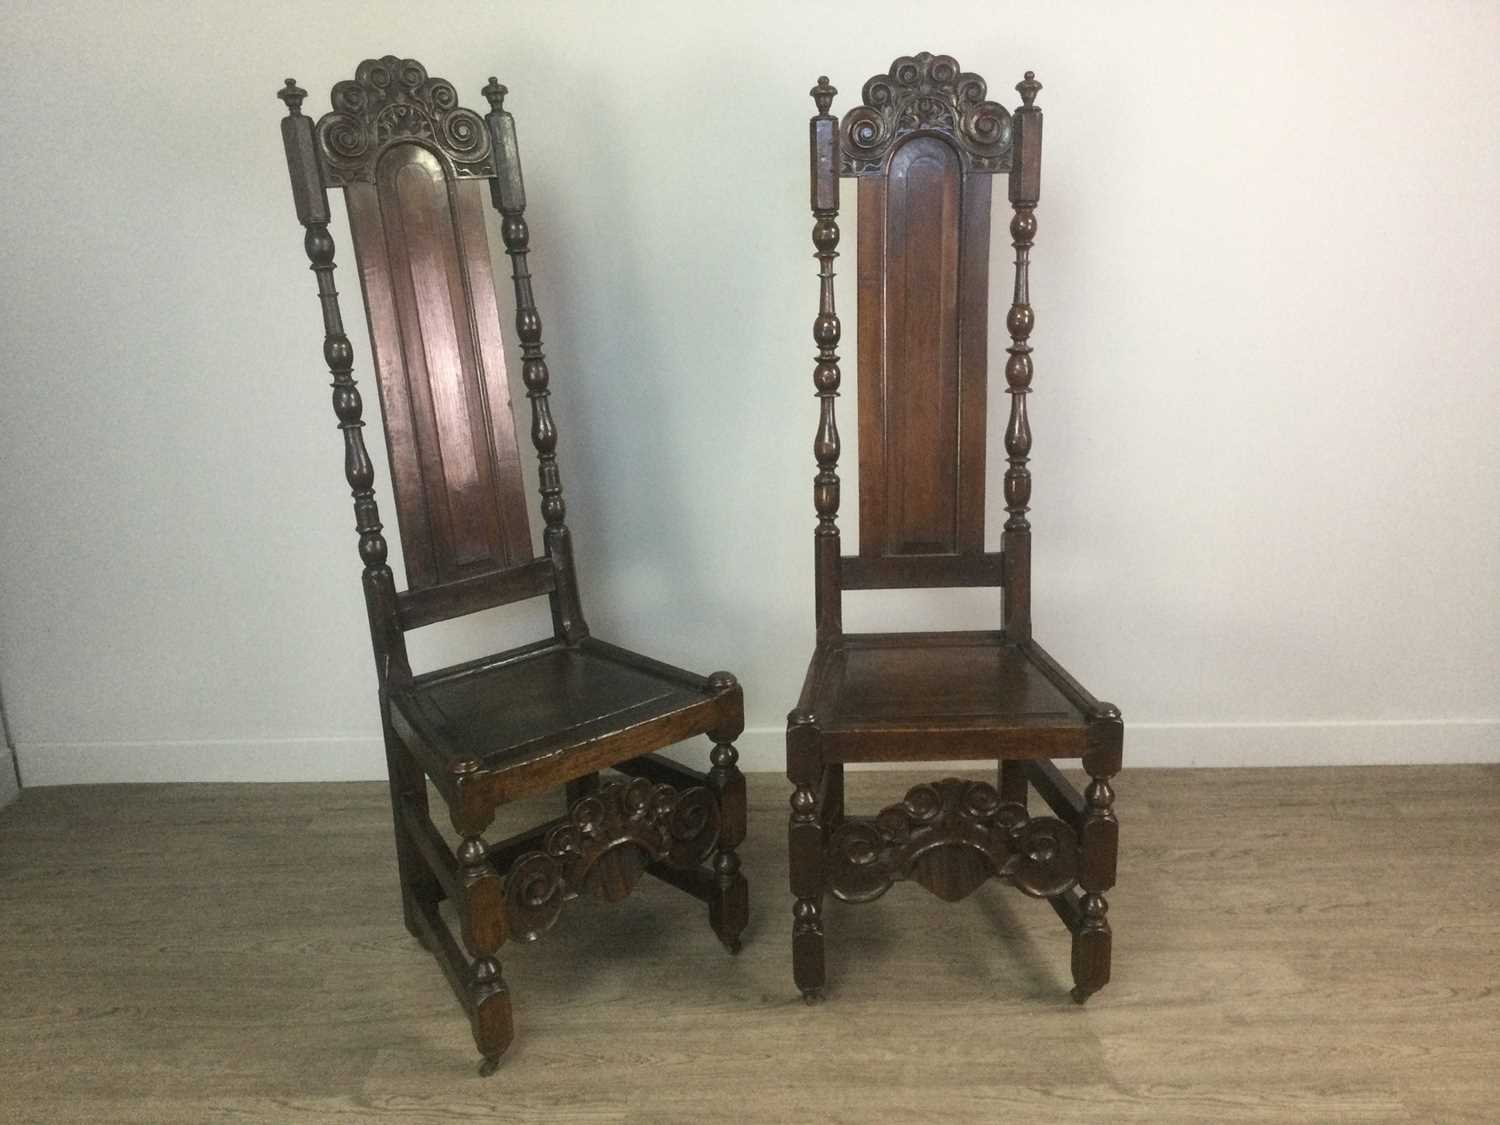 Lot 1403 - A PAIR OF OAK HIGH BACK HALL CHAIRS IN THE MANNER OF DANIEL MAROT